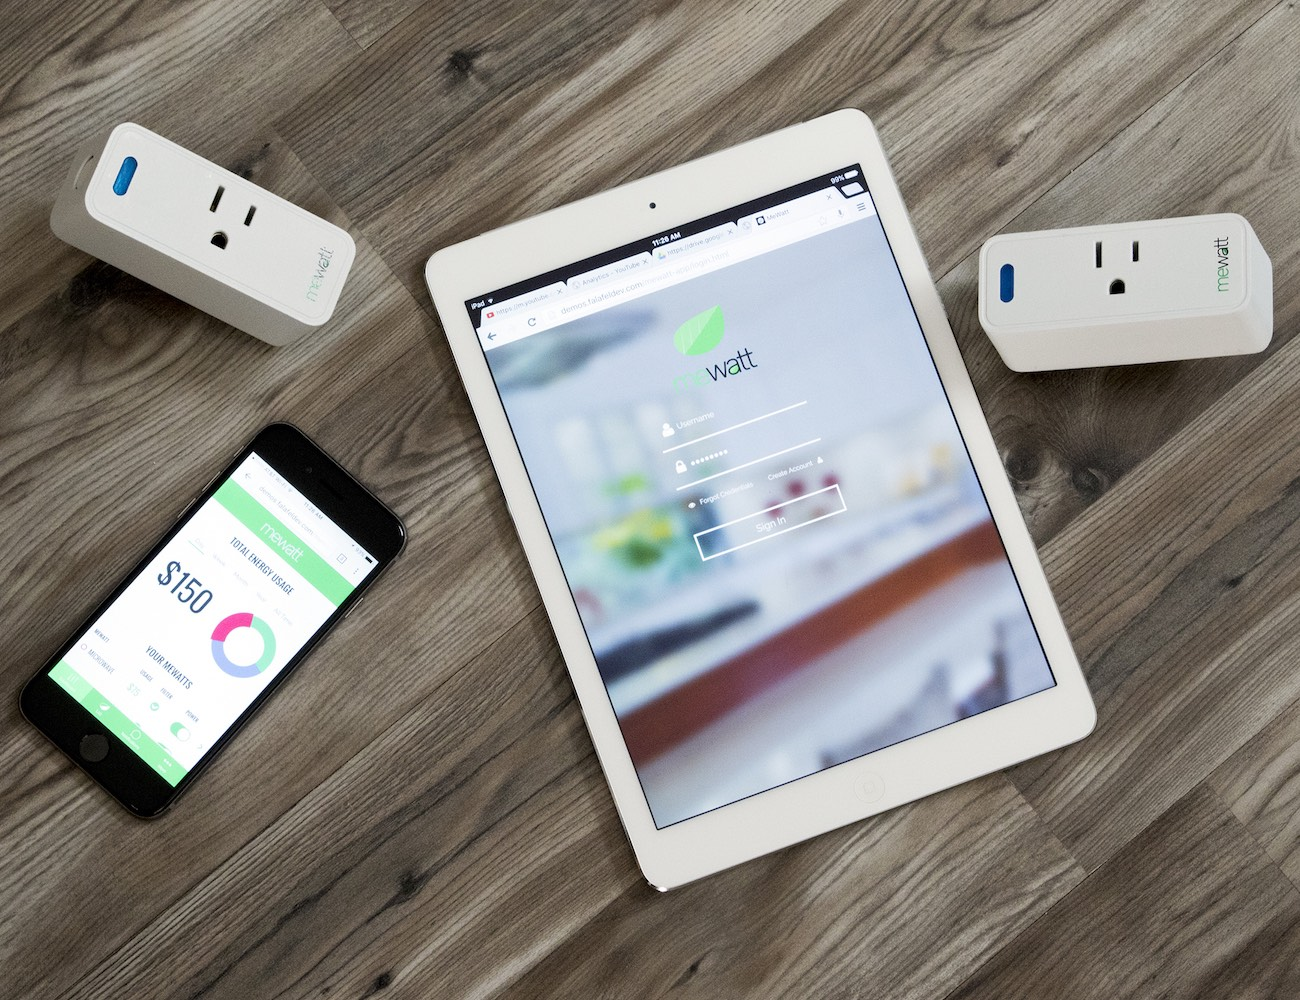 MeWatt – Real-Time Energy Monitoring Solution